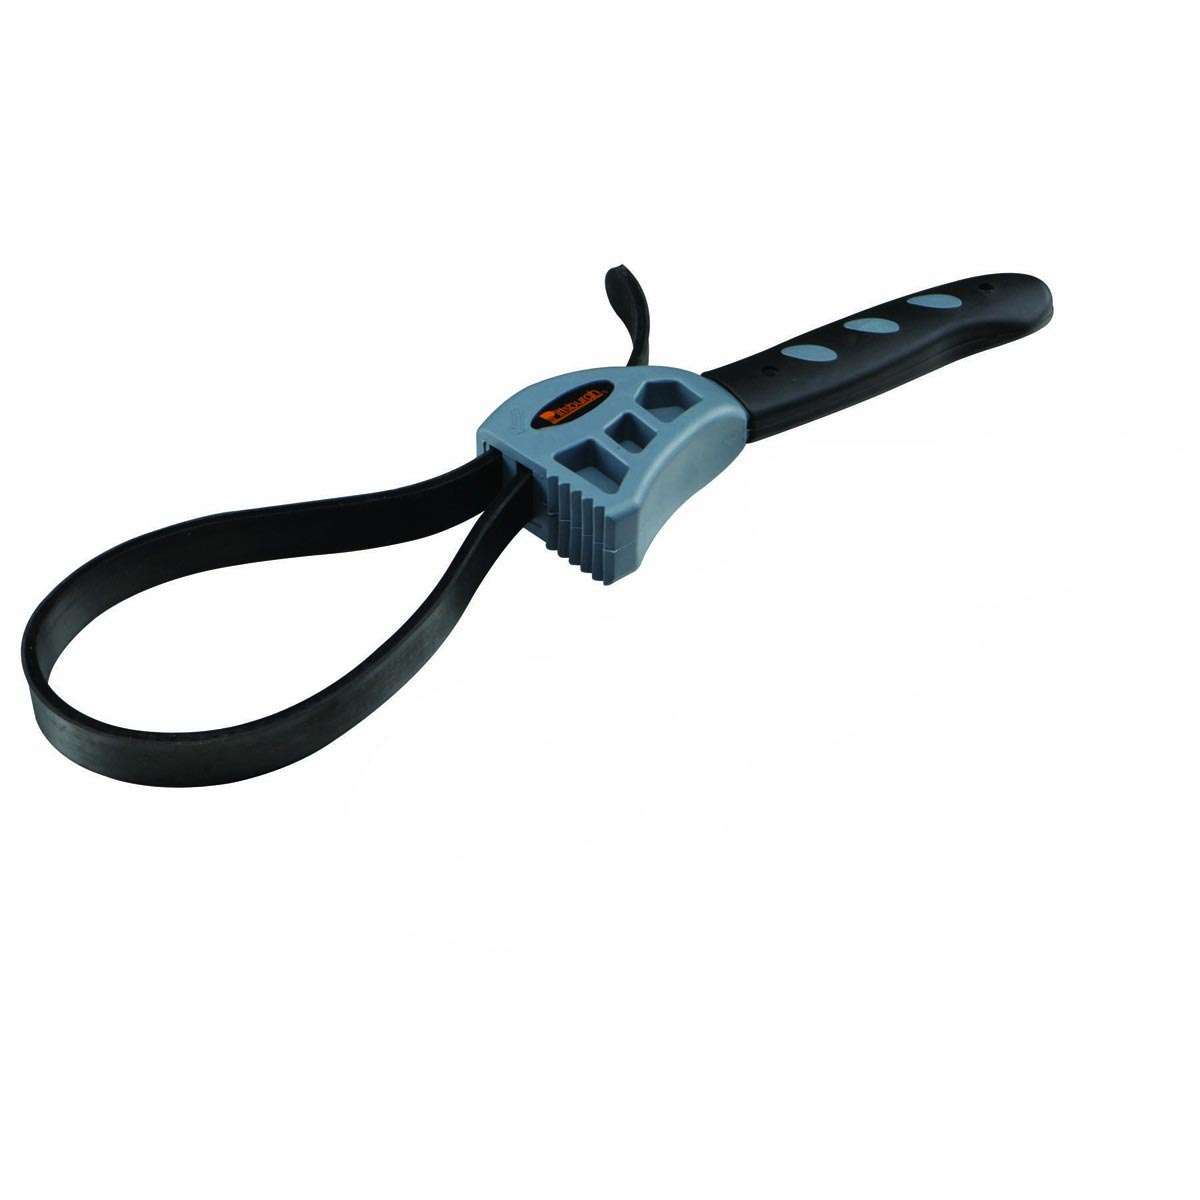 Universal 6 inch Water Filter Wrench For VFH04, VFH08 and AF001 Filter Bodies and others